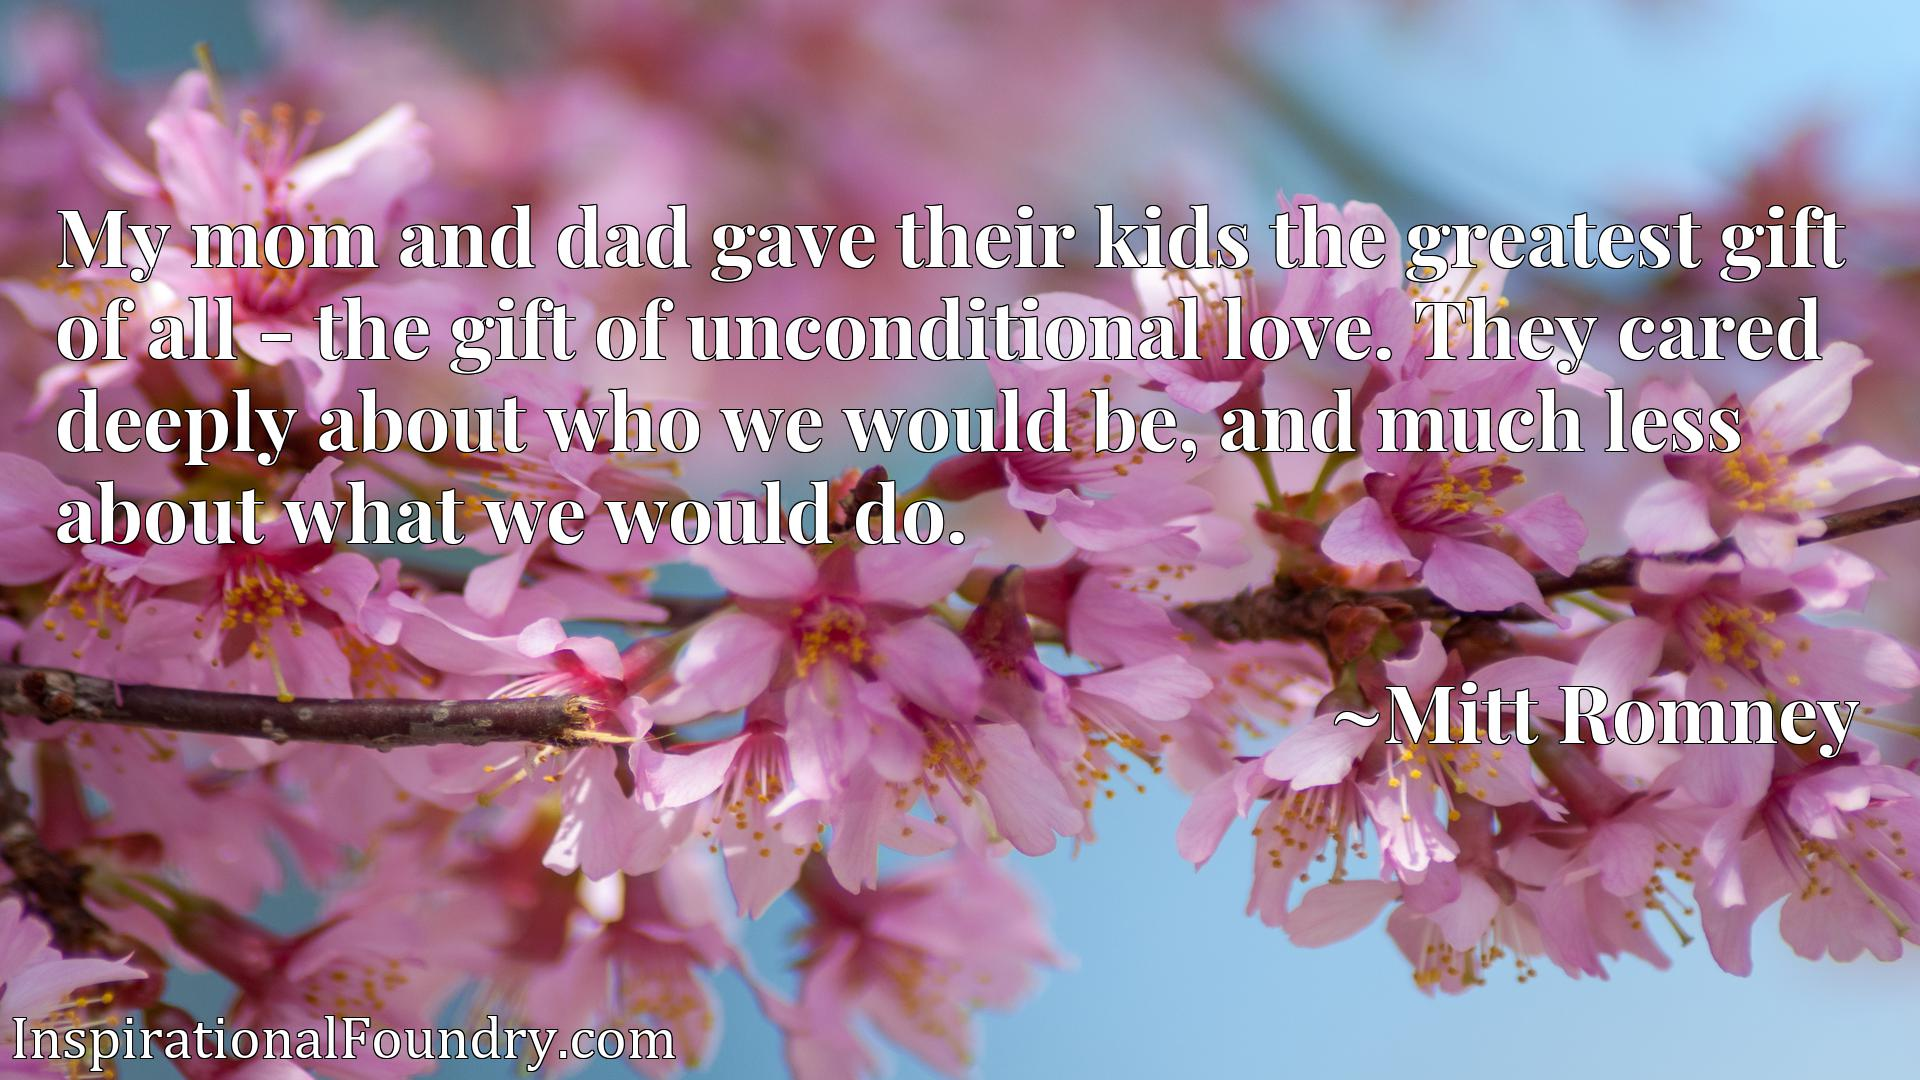 My mom and dad gave their kids the greatest gift of all - the gift of unconditional love. They cared deeply about who we would be, and much less about what we would do.